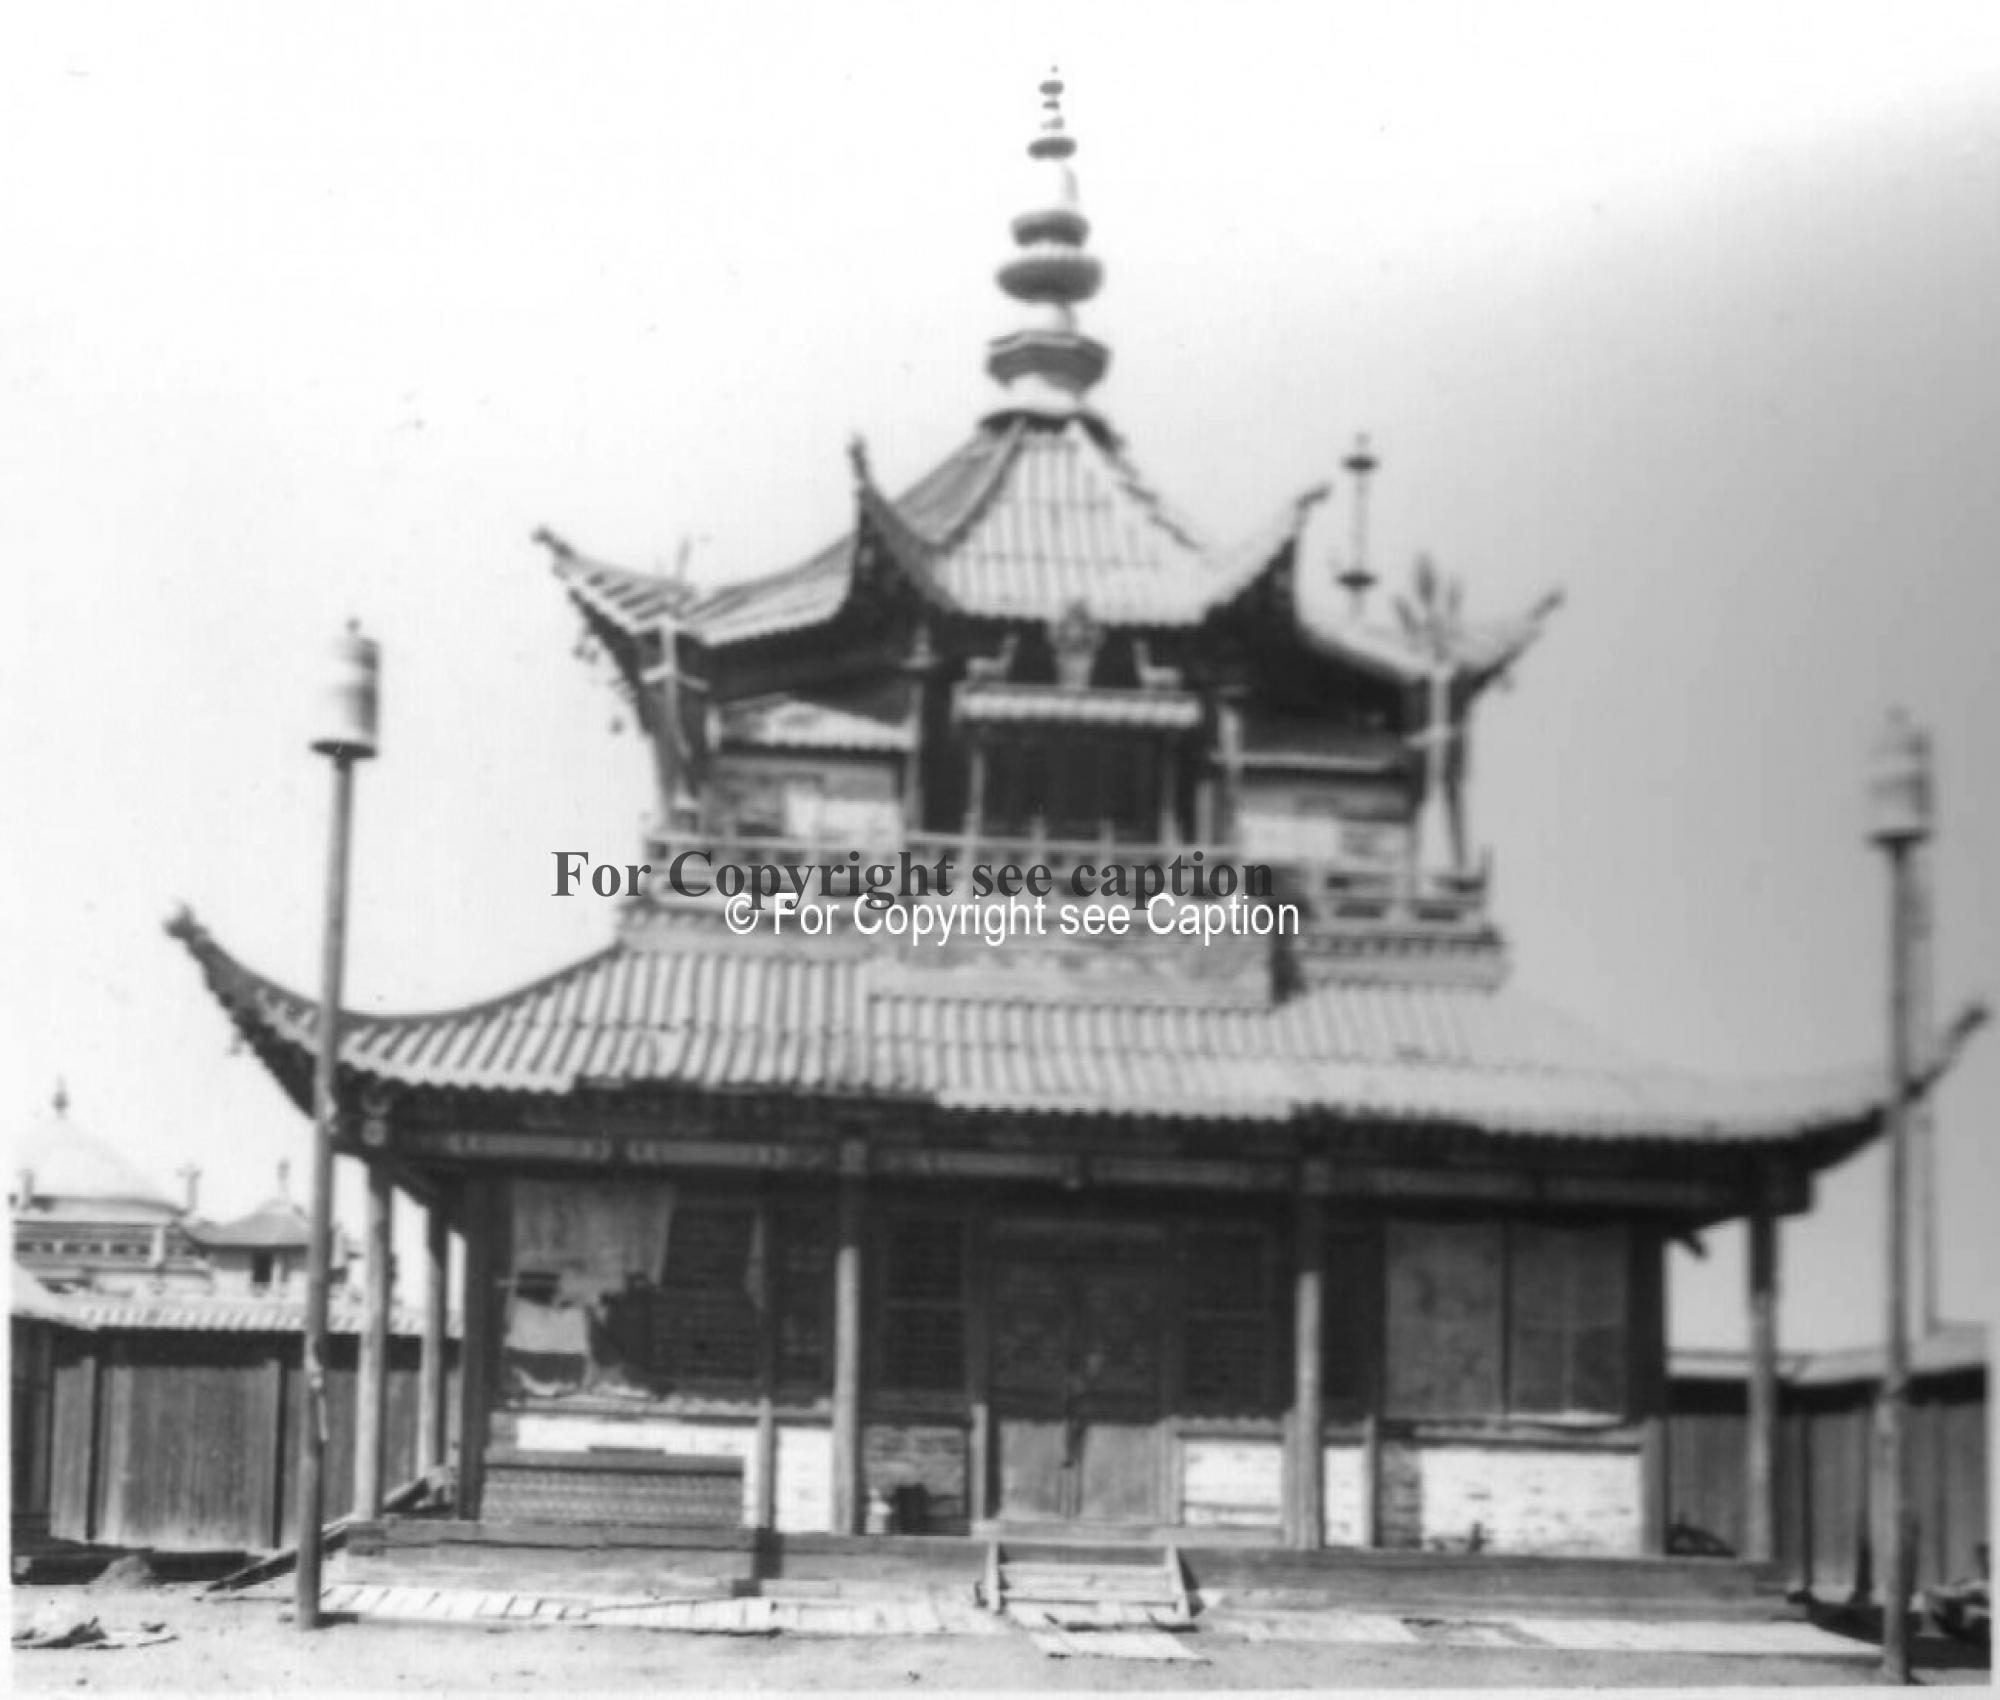 Dorj povran within the Yellow Palace. Film Archives